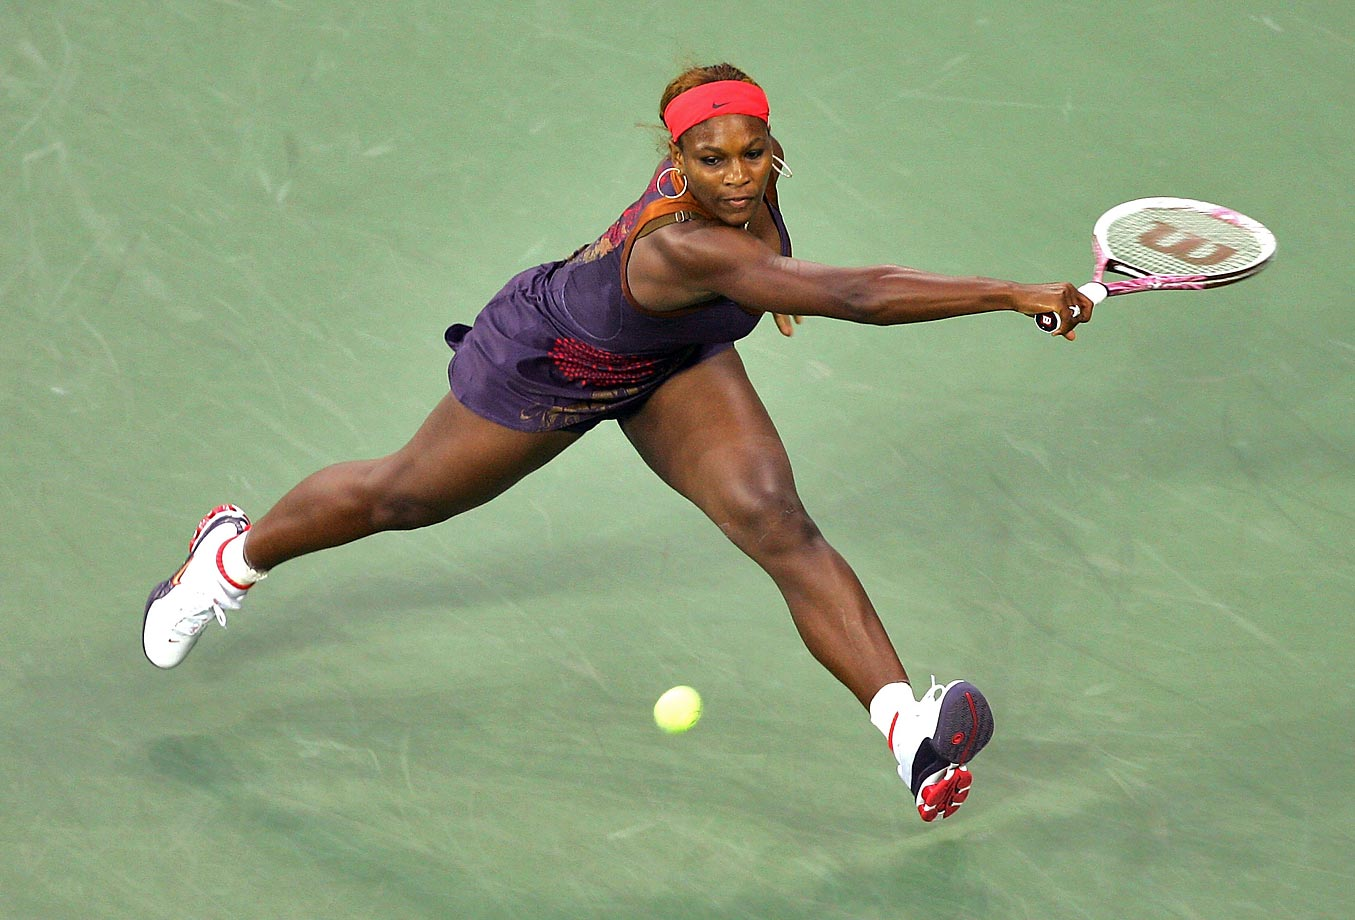 Recovering from a knee injury, Serena didn't win a single tournament in 2006 and finished the year ranked 95th in the world.